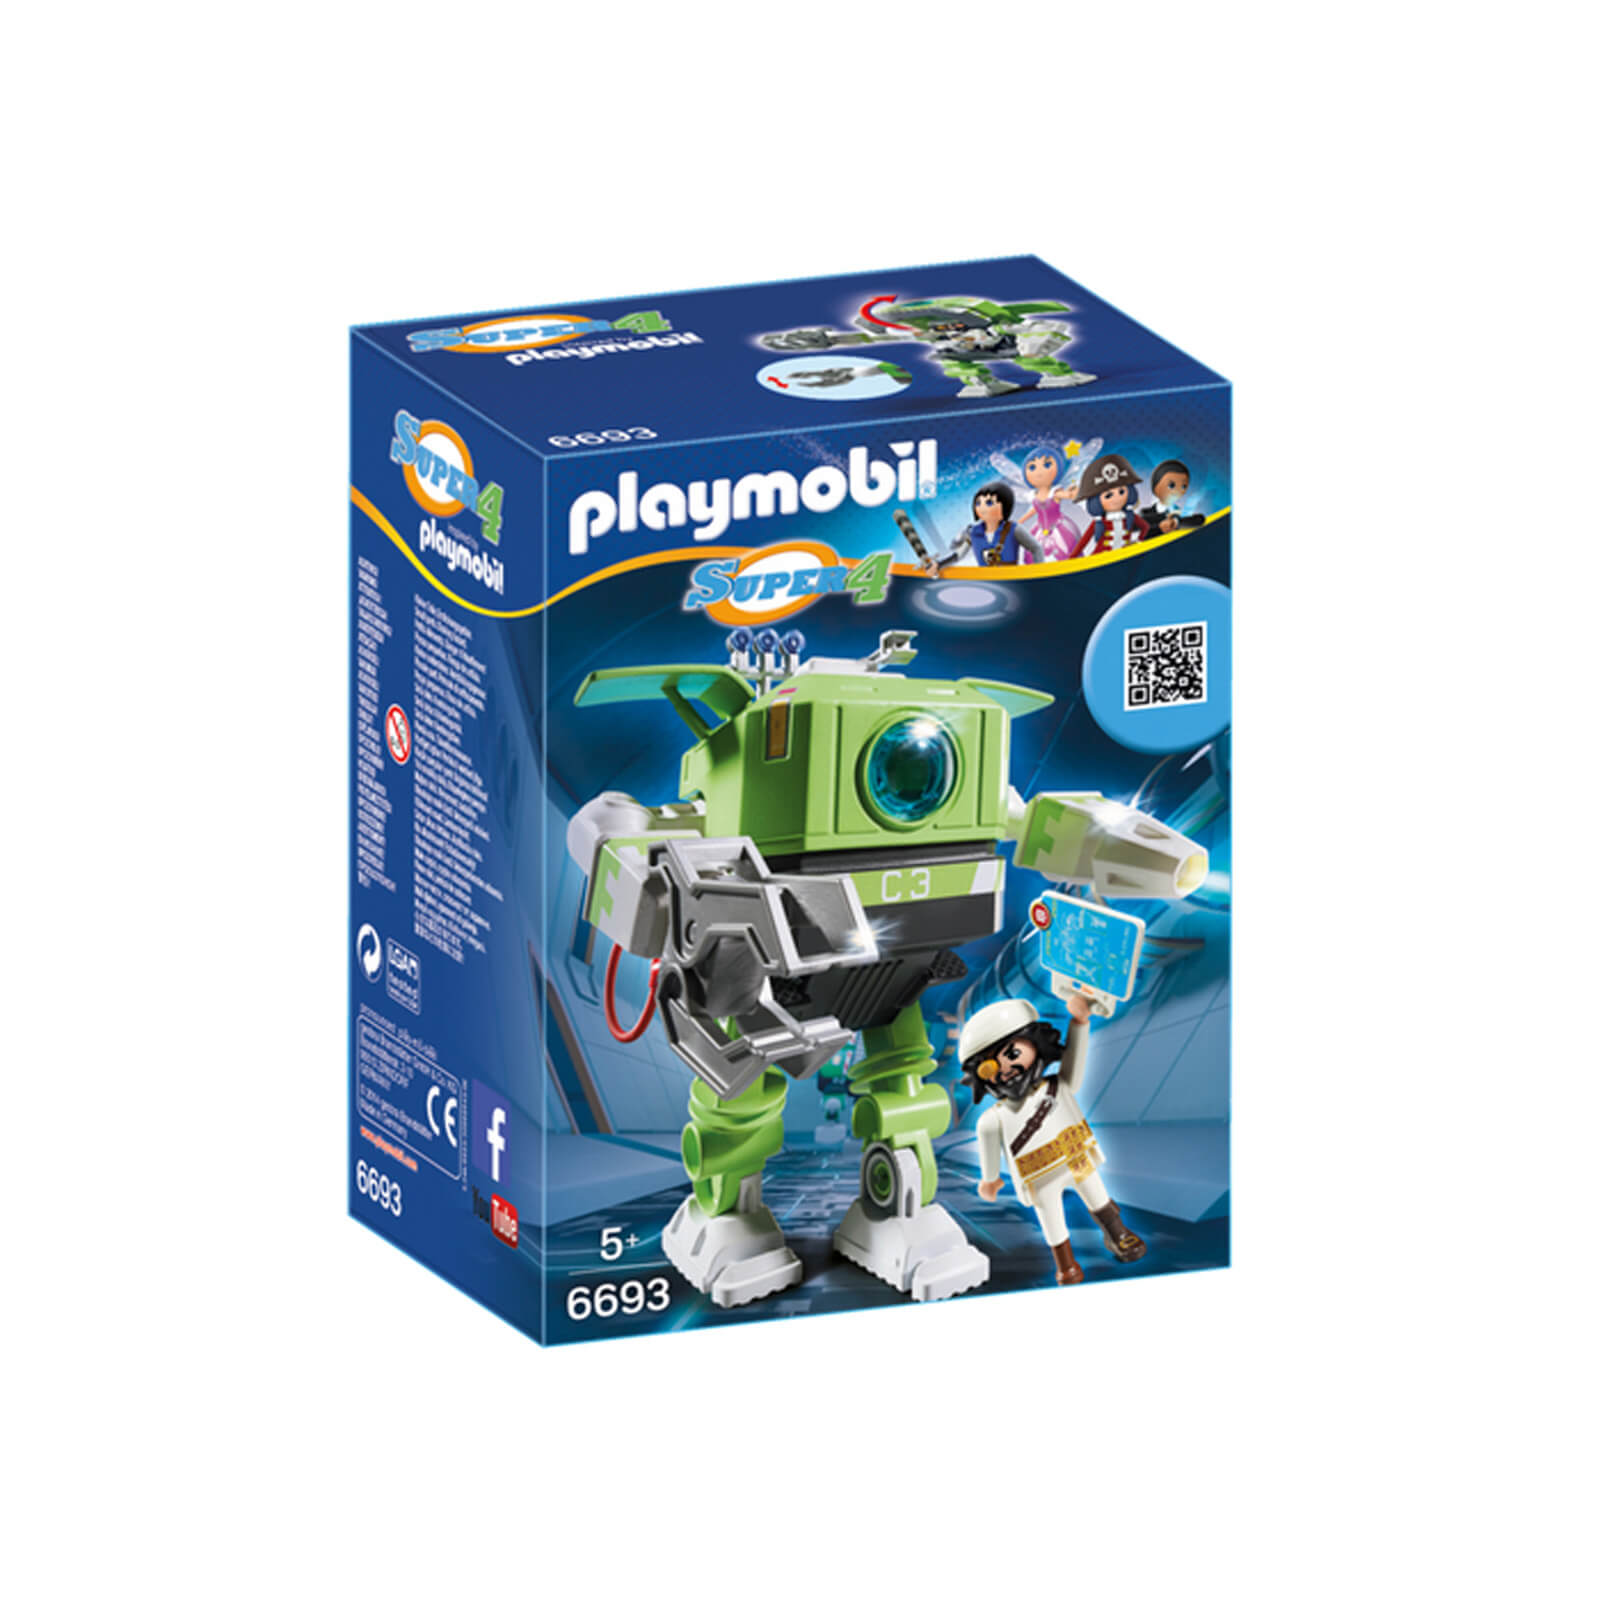 Playmobil Super 4 Cleano Robot (6693)